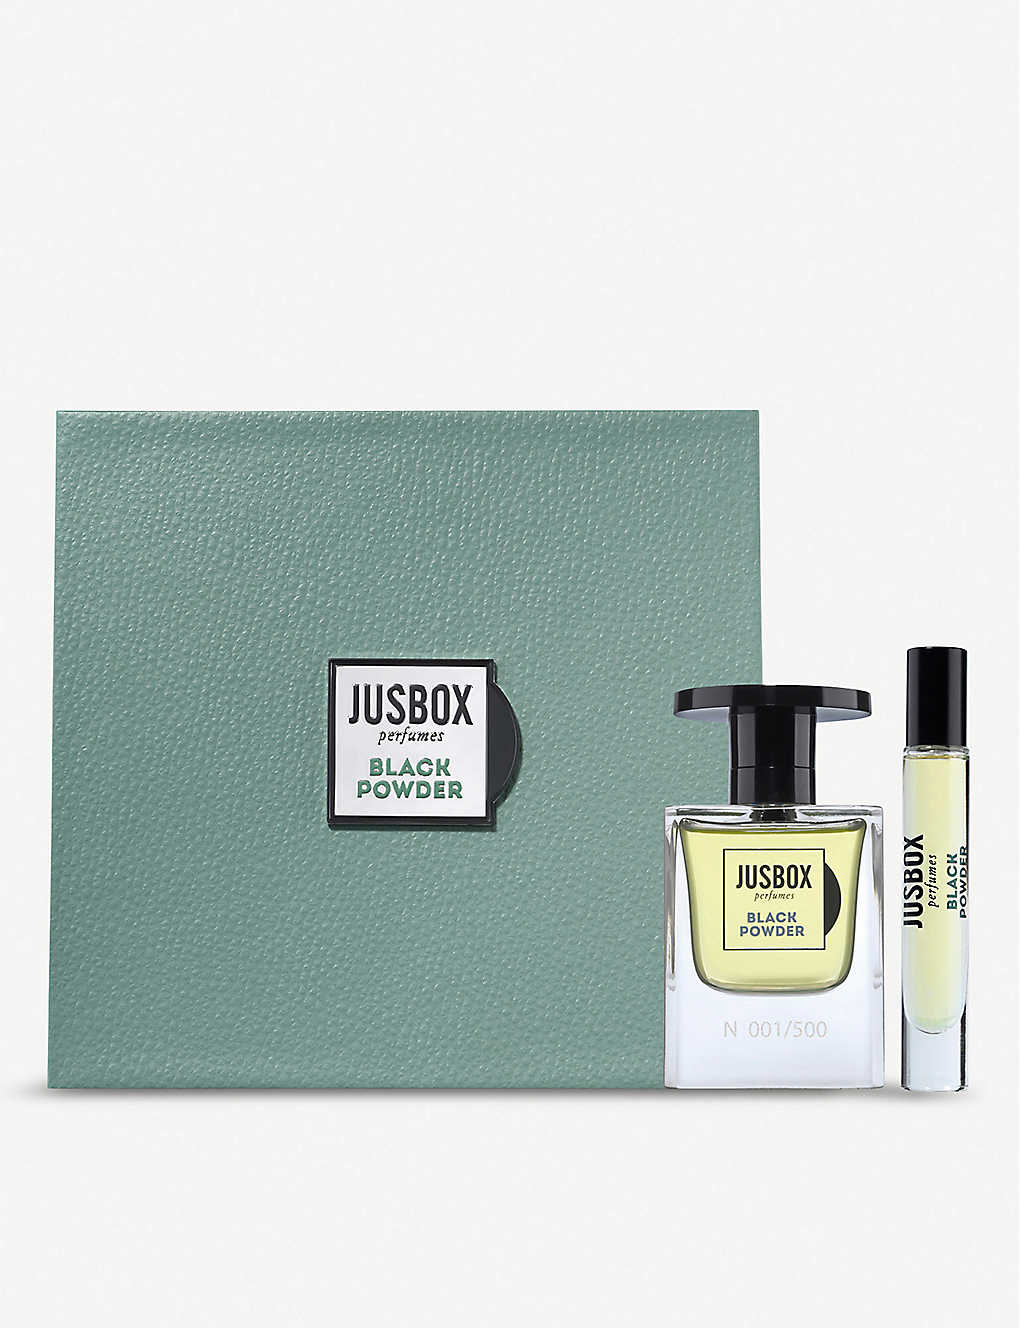 JUSBOX: Black Powder Eau de Parfum gift set